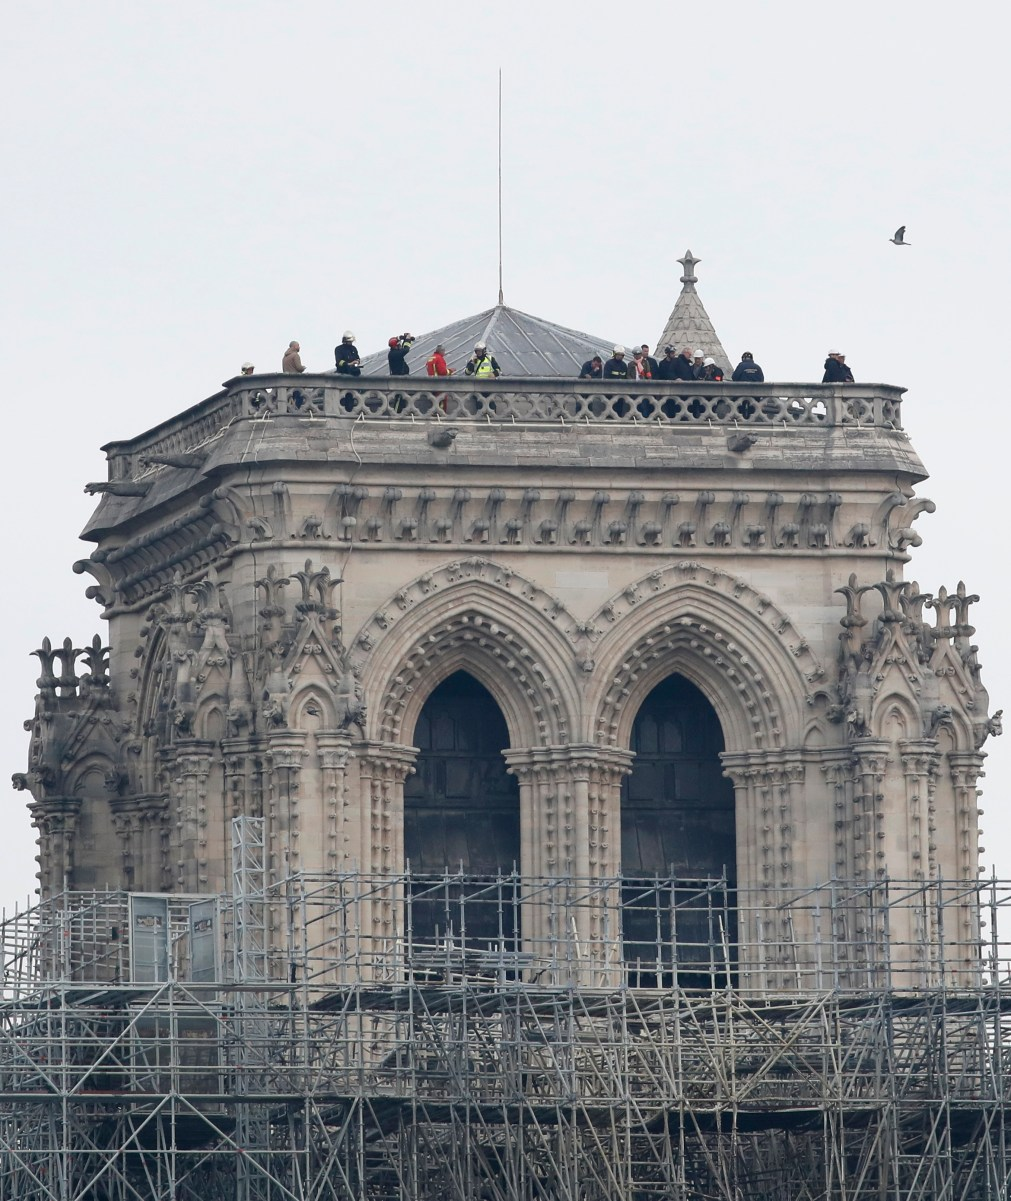 Firefighters inspect one of the two towers, which survived the blaze